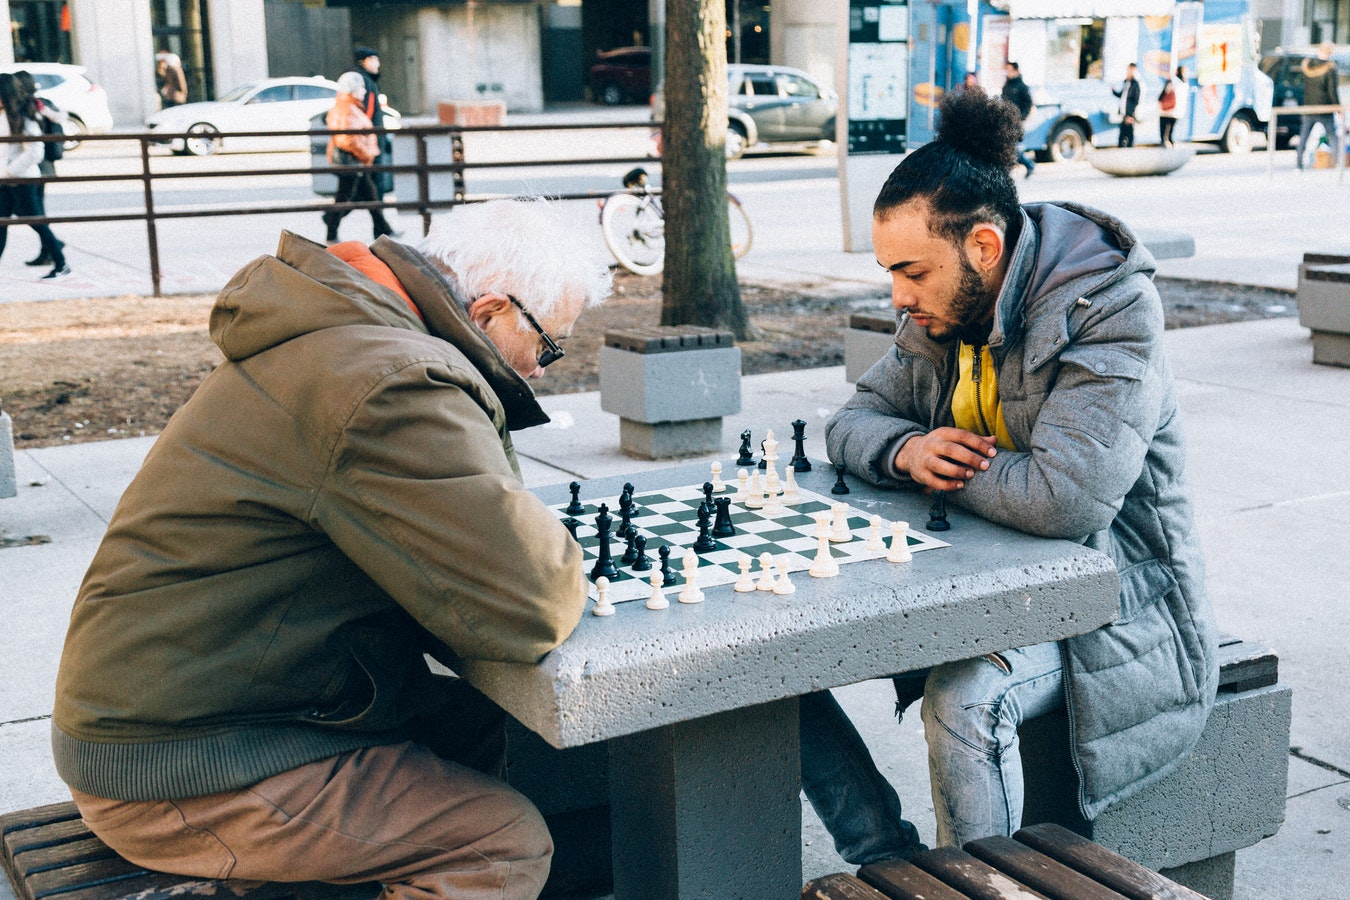 two people, an elderly person and a young man playing chess